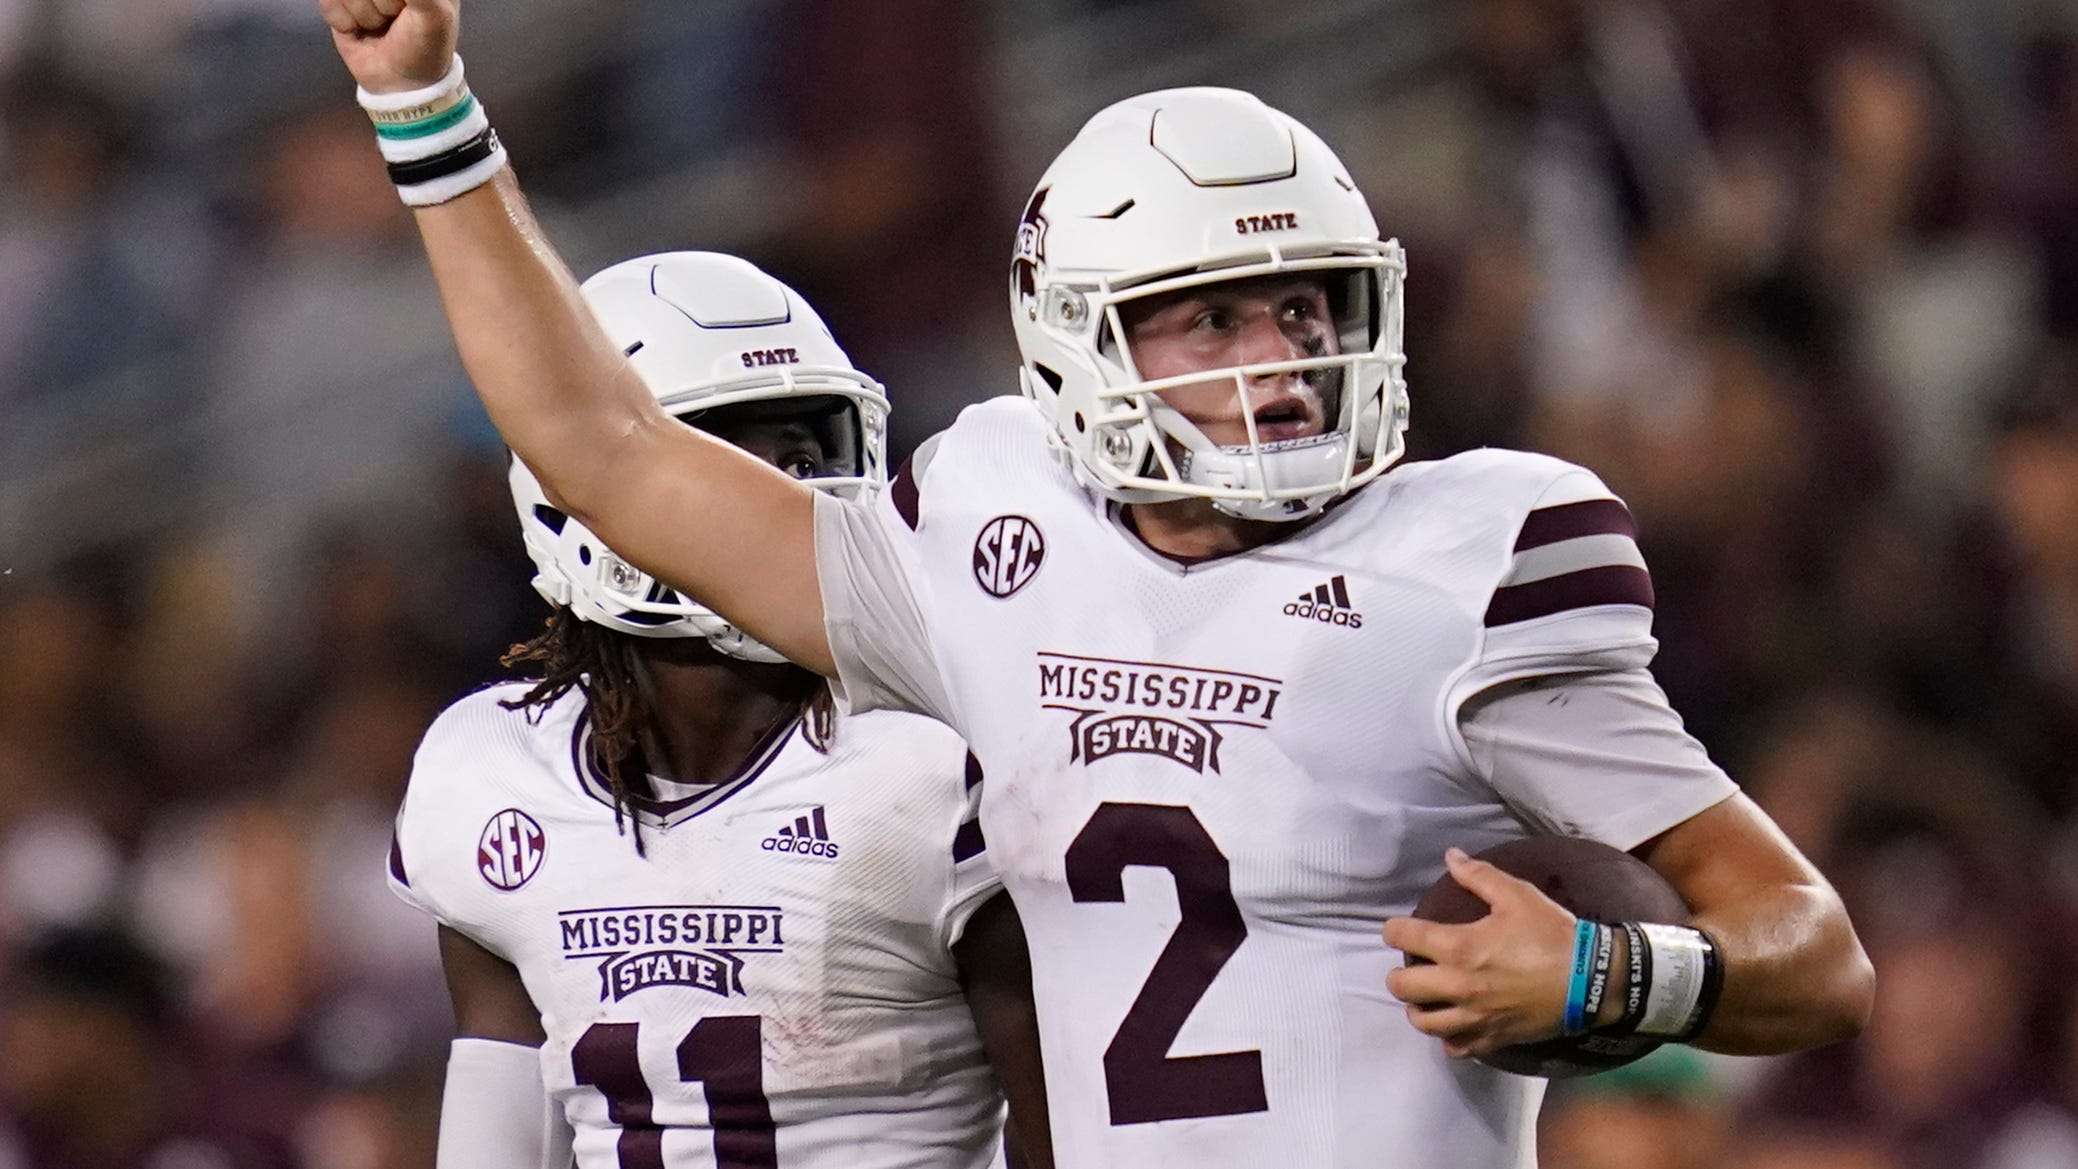 Will Rogers produced his best game yet for Mississippi State football